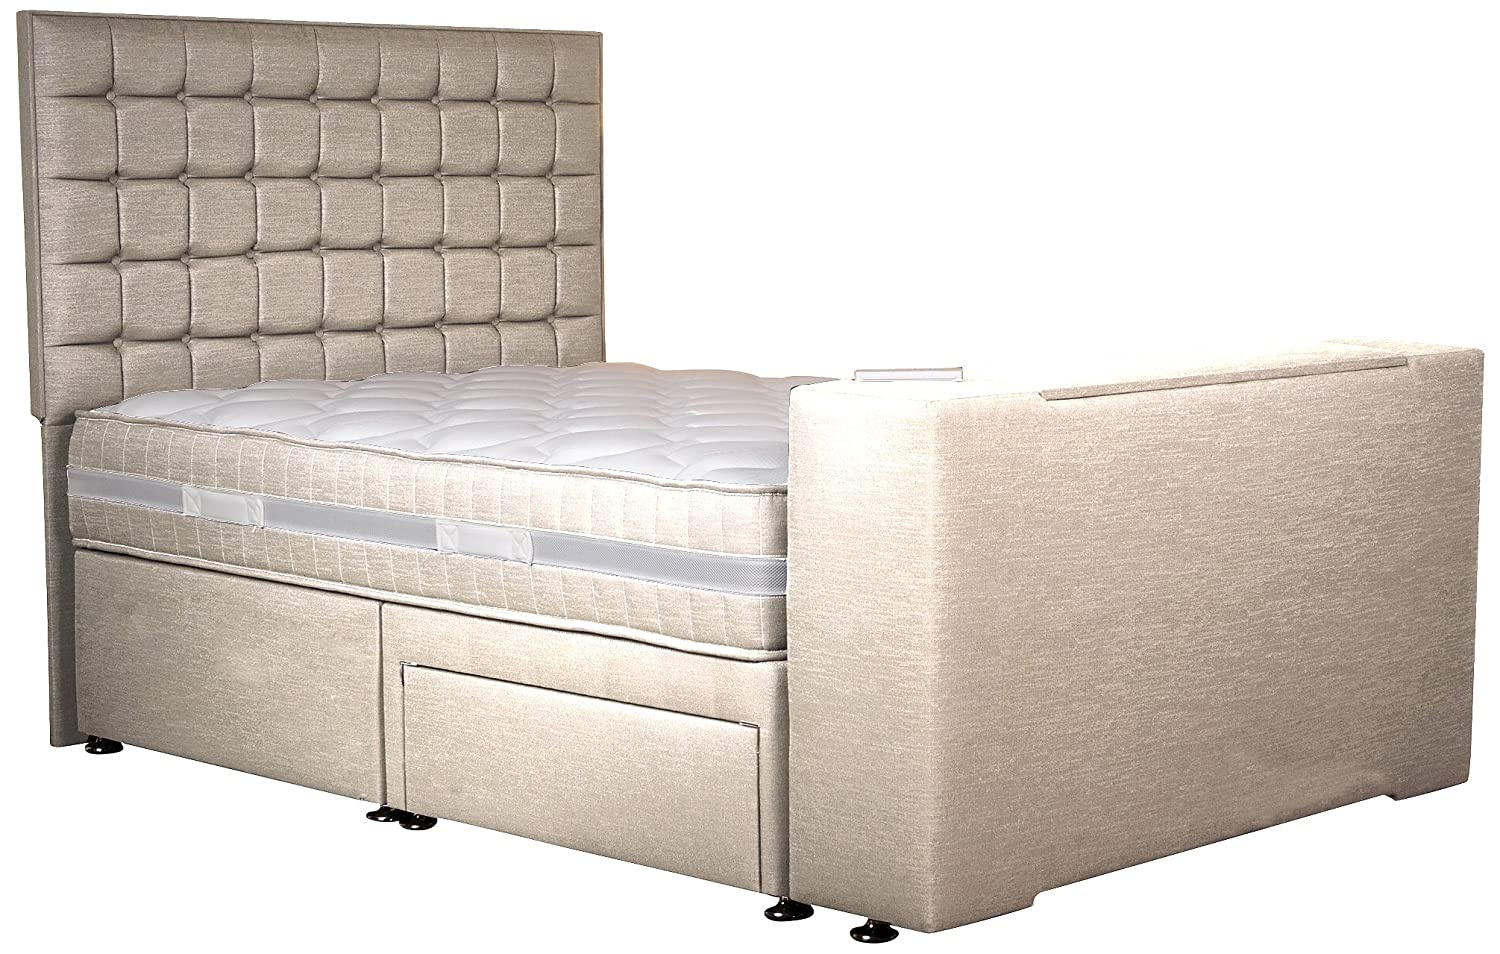 Sweet Dreams Image Classic Luxury Divan Double TV Bed with 2-Storage ...